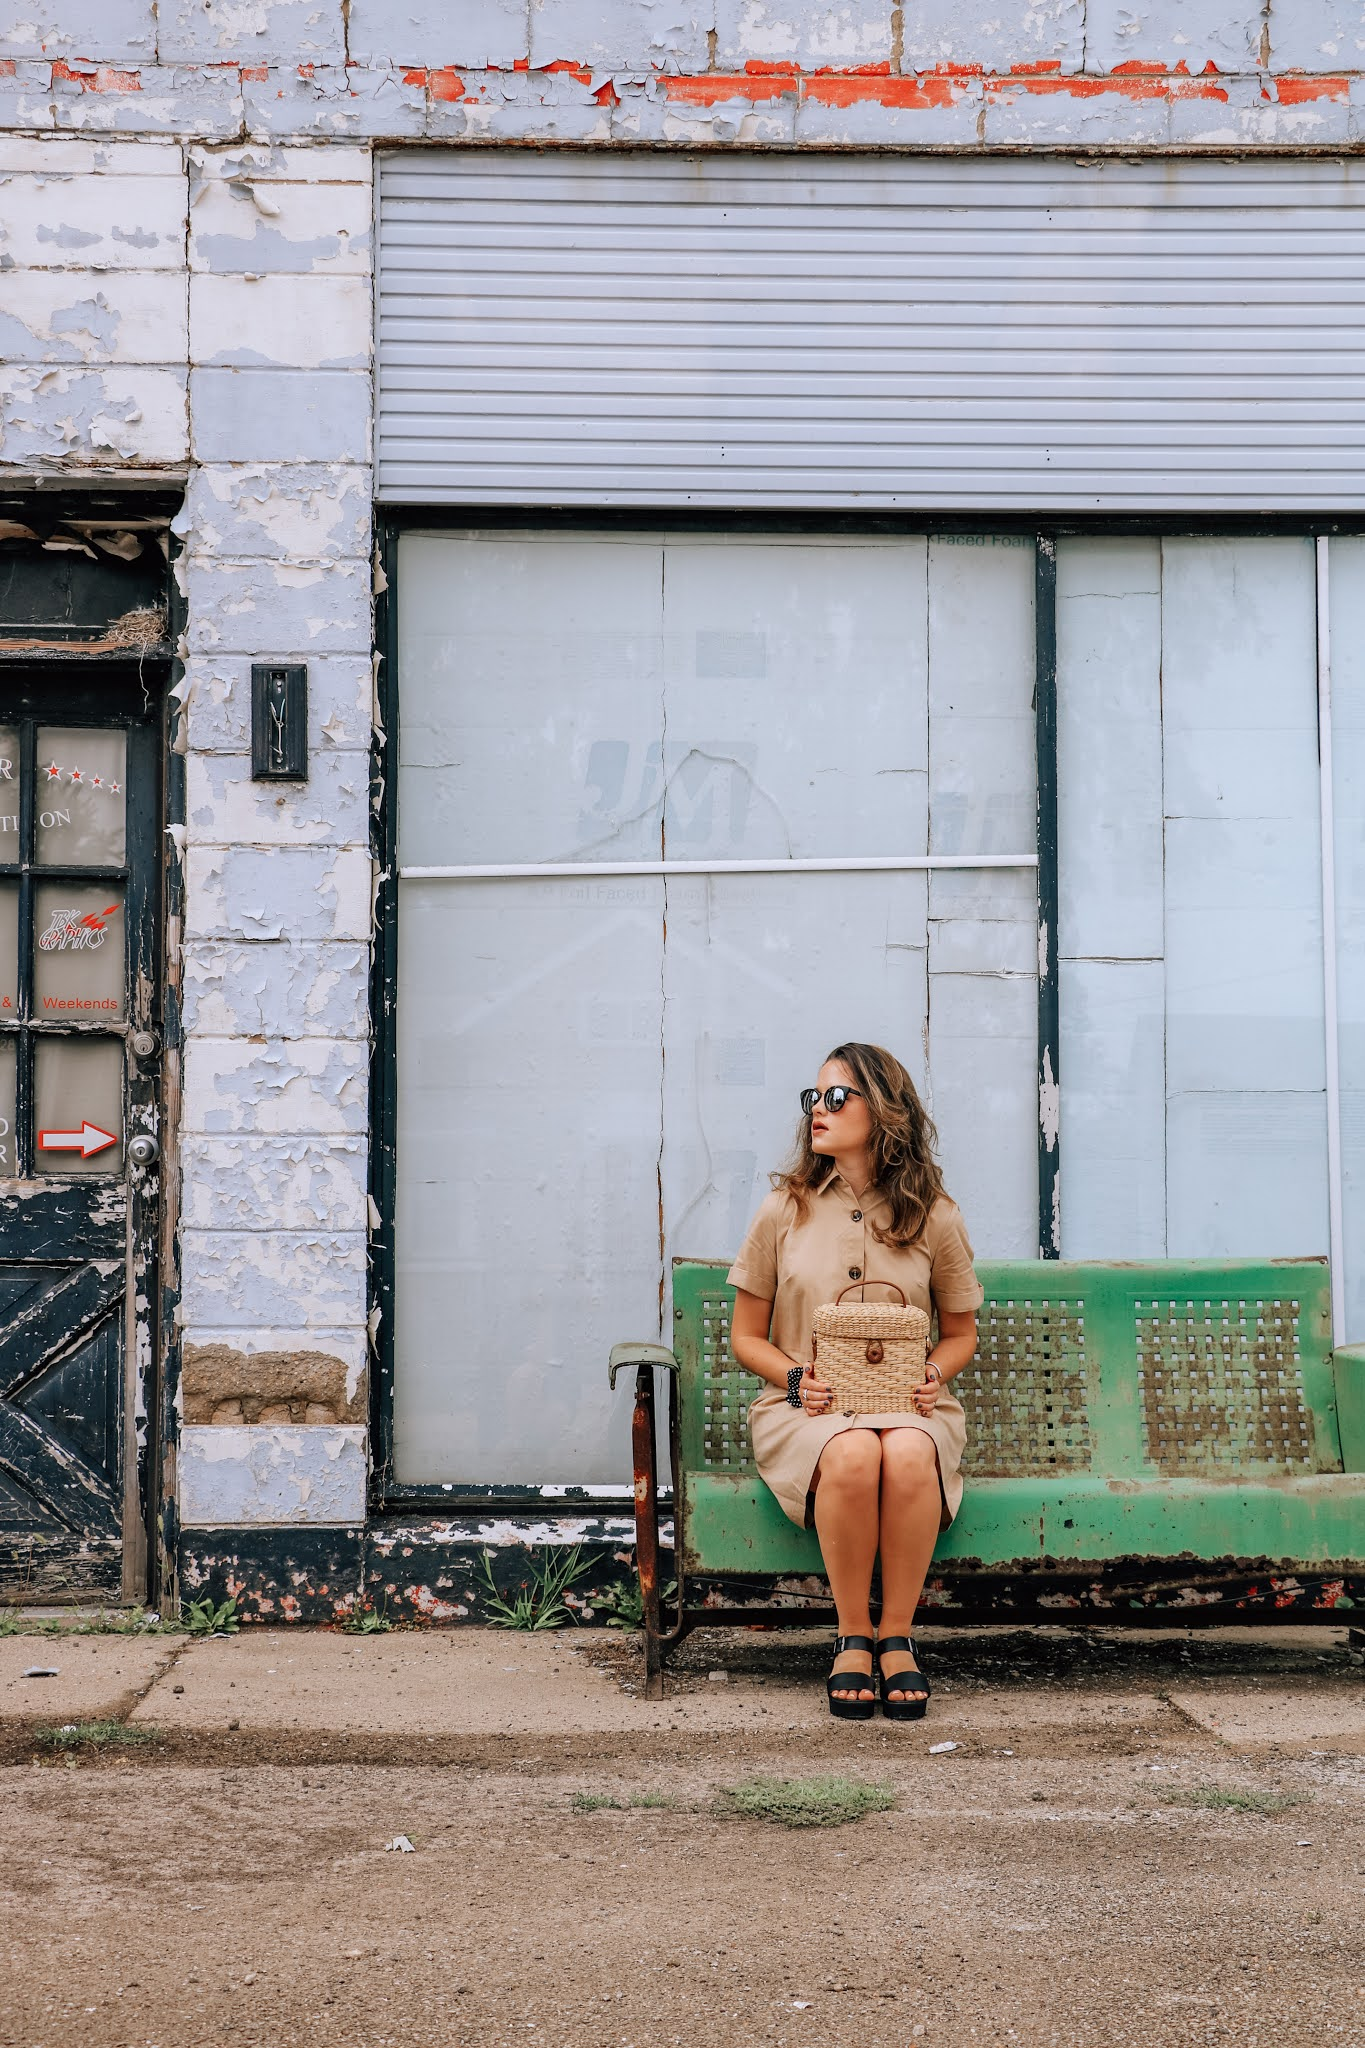 Fashion blogger Kathleen Harper posing as a young stylish woman waiting for the bus in a photo shoot.